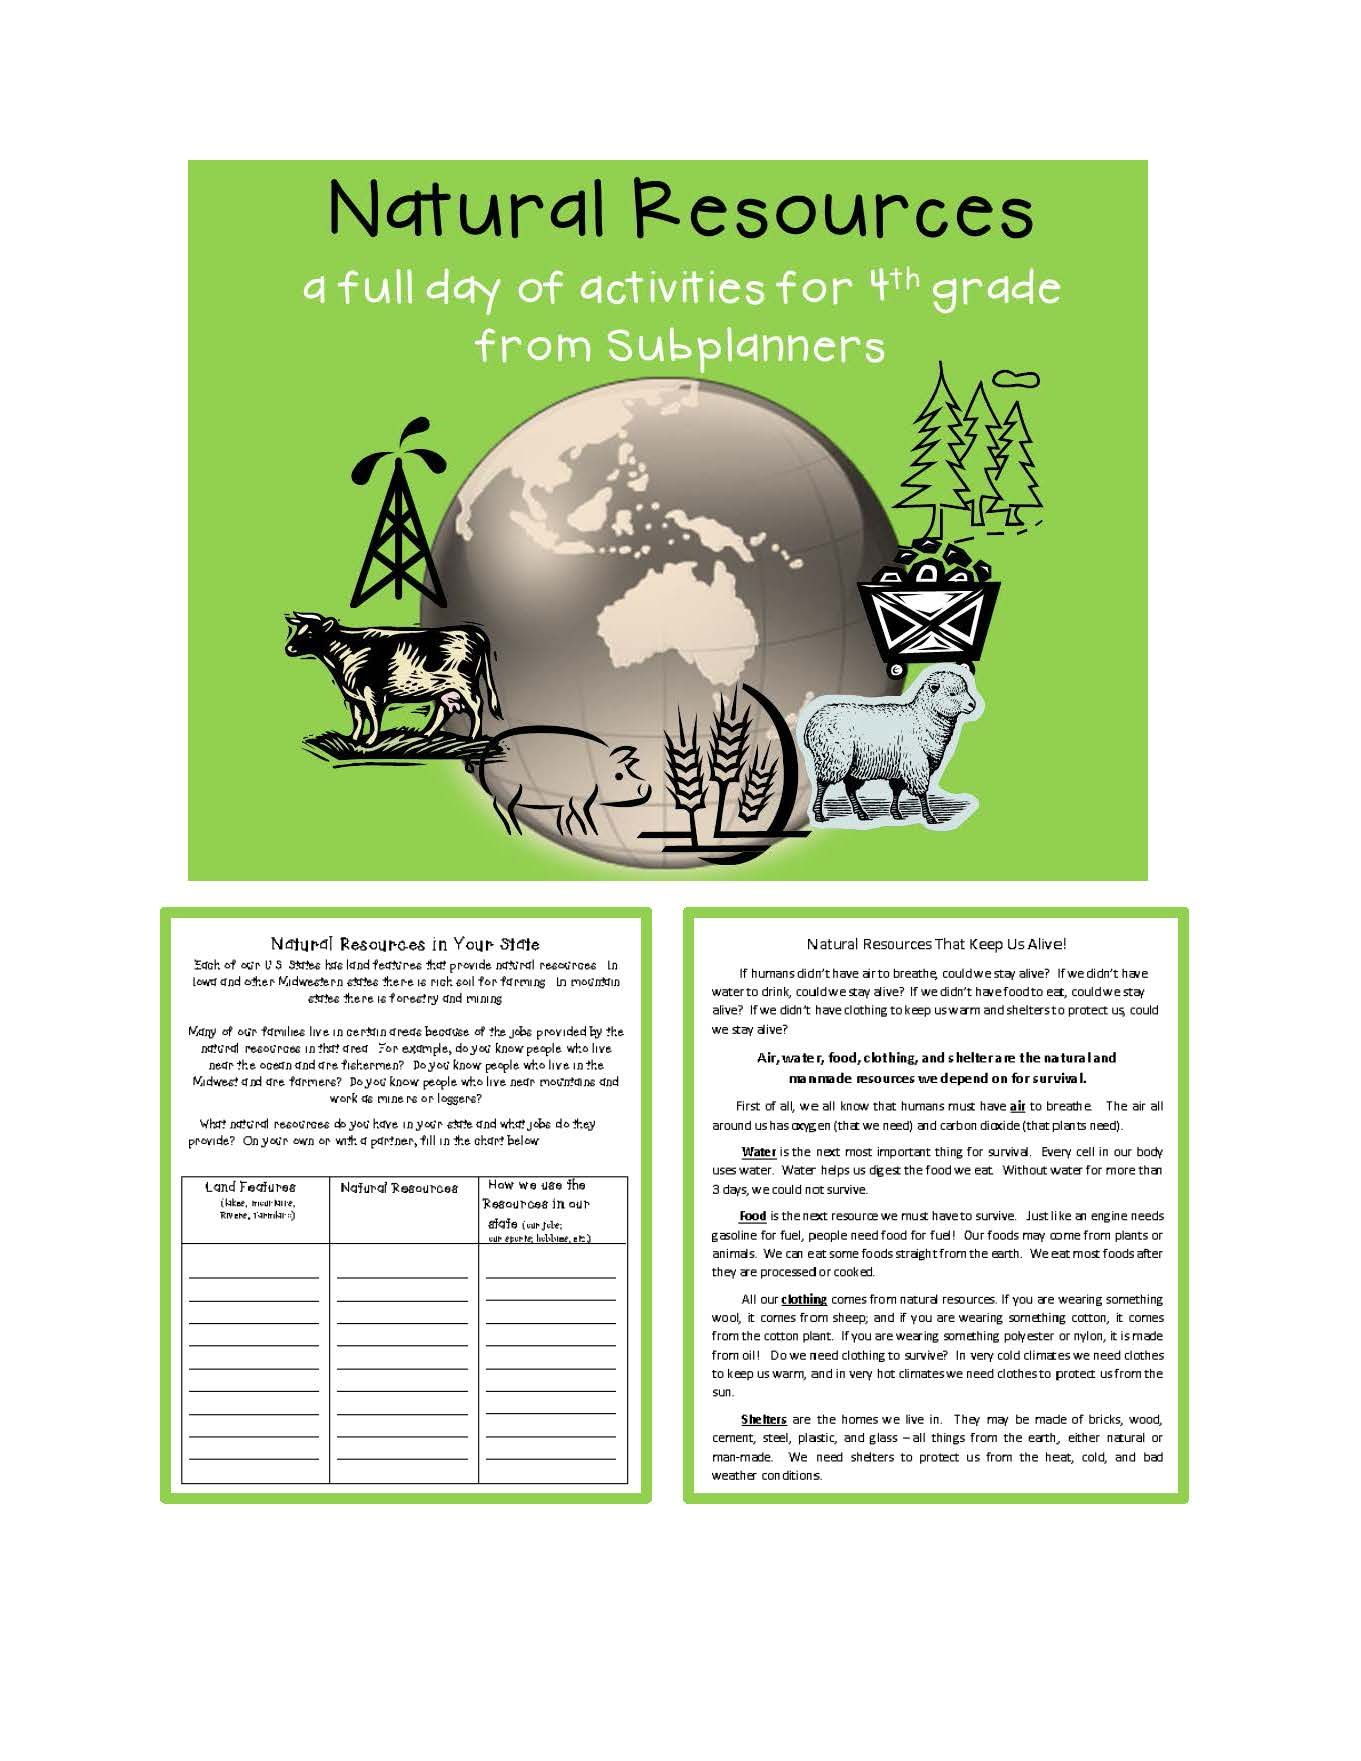 Natural Resources A Full Day Of Activities For 4th Graders